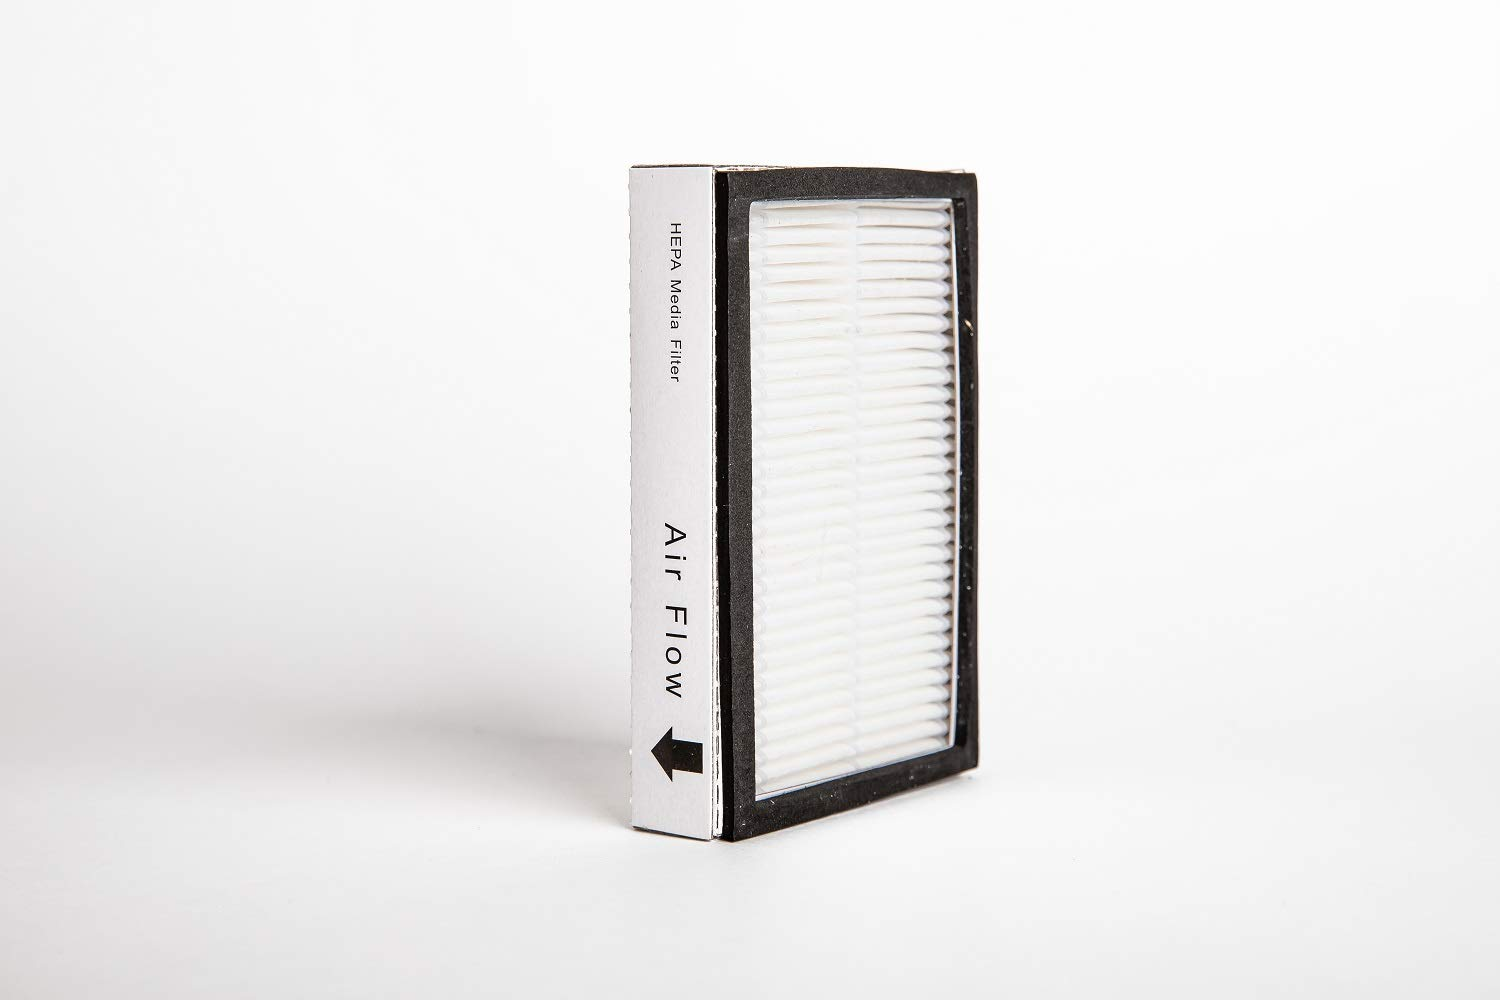 Green Label Replacement Exhaust HEPA Filter EF-2 for Kenmore and Panasonic Vacuum Cleaners (Compares to 86880 and MC-V194H)